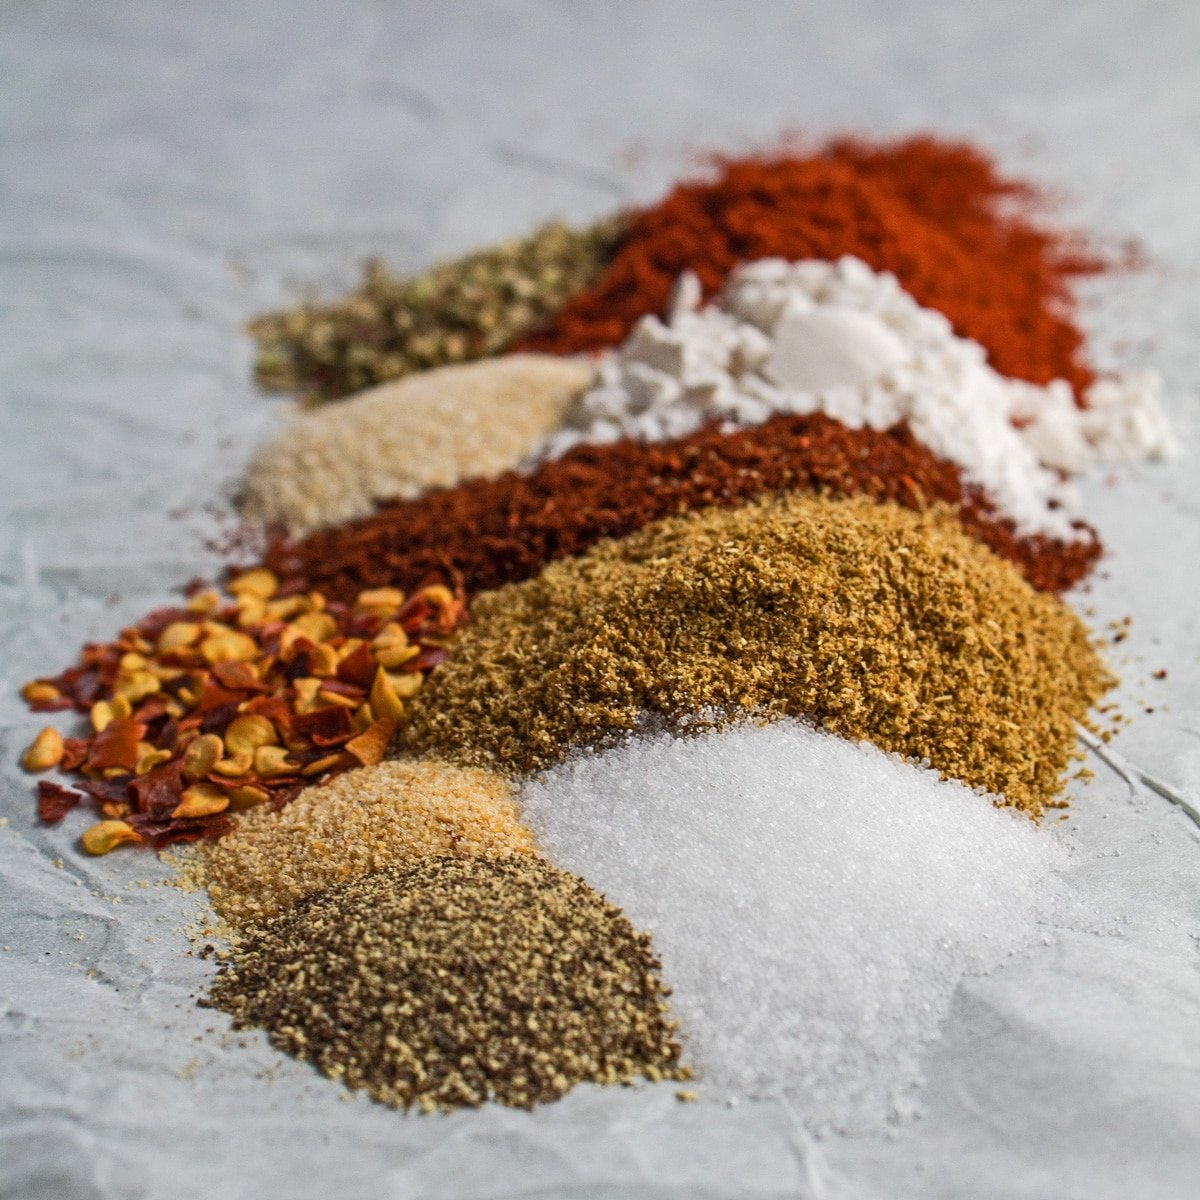 All of the ingredients you need to make homemade taco seasoning mix.